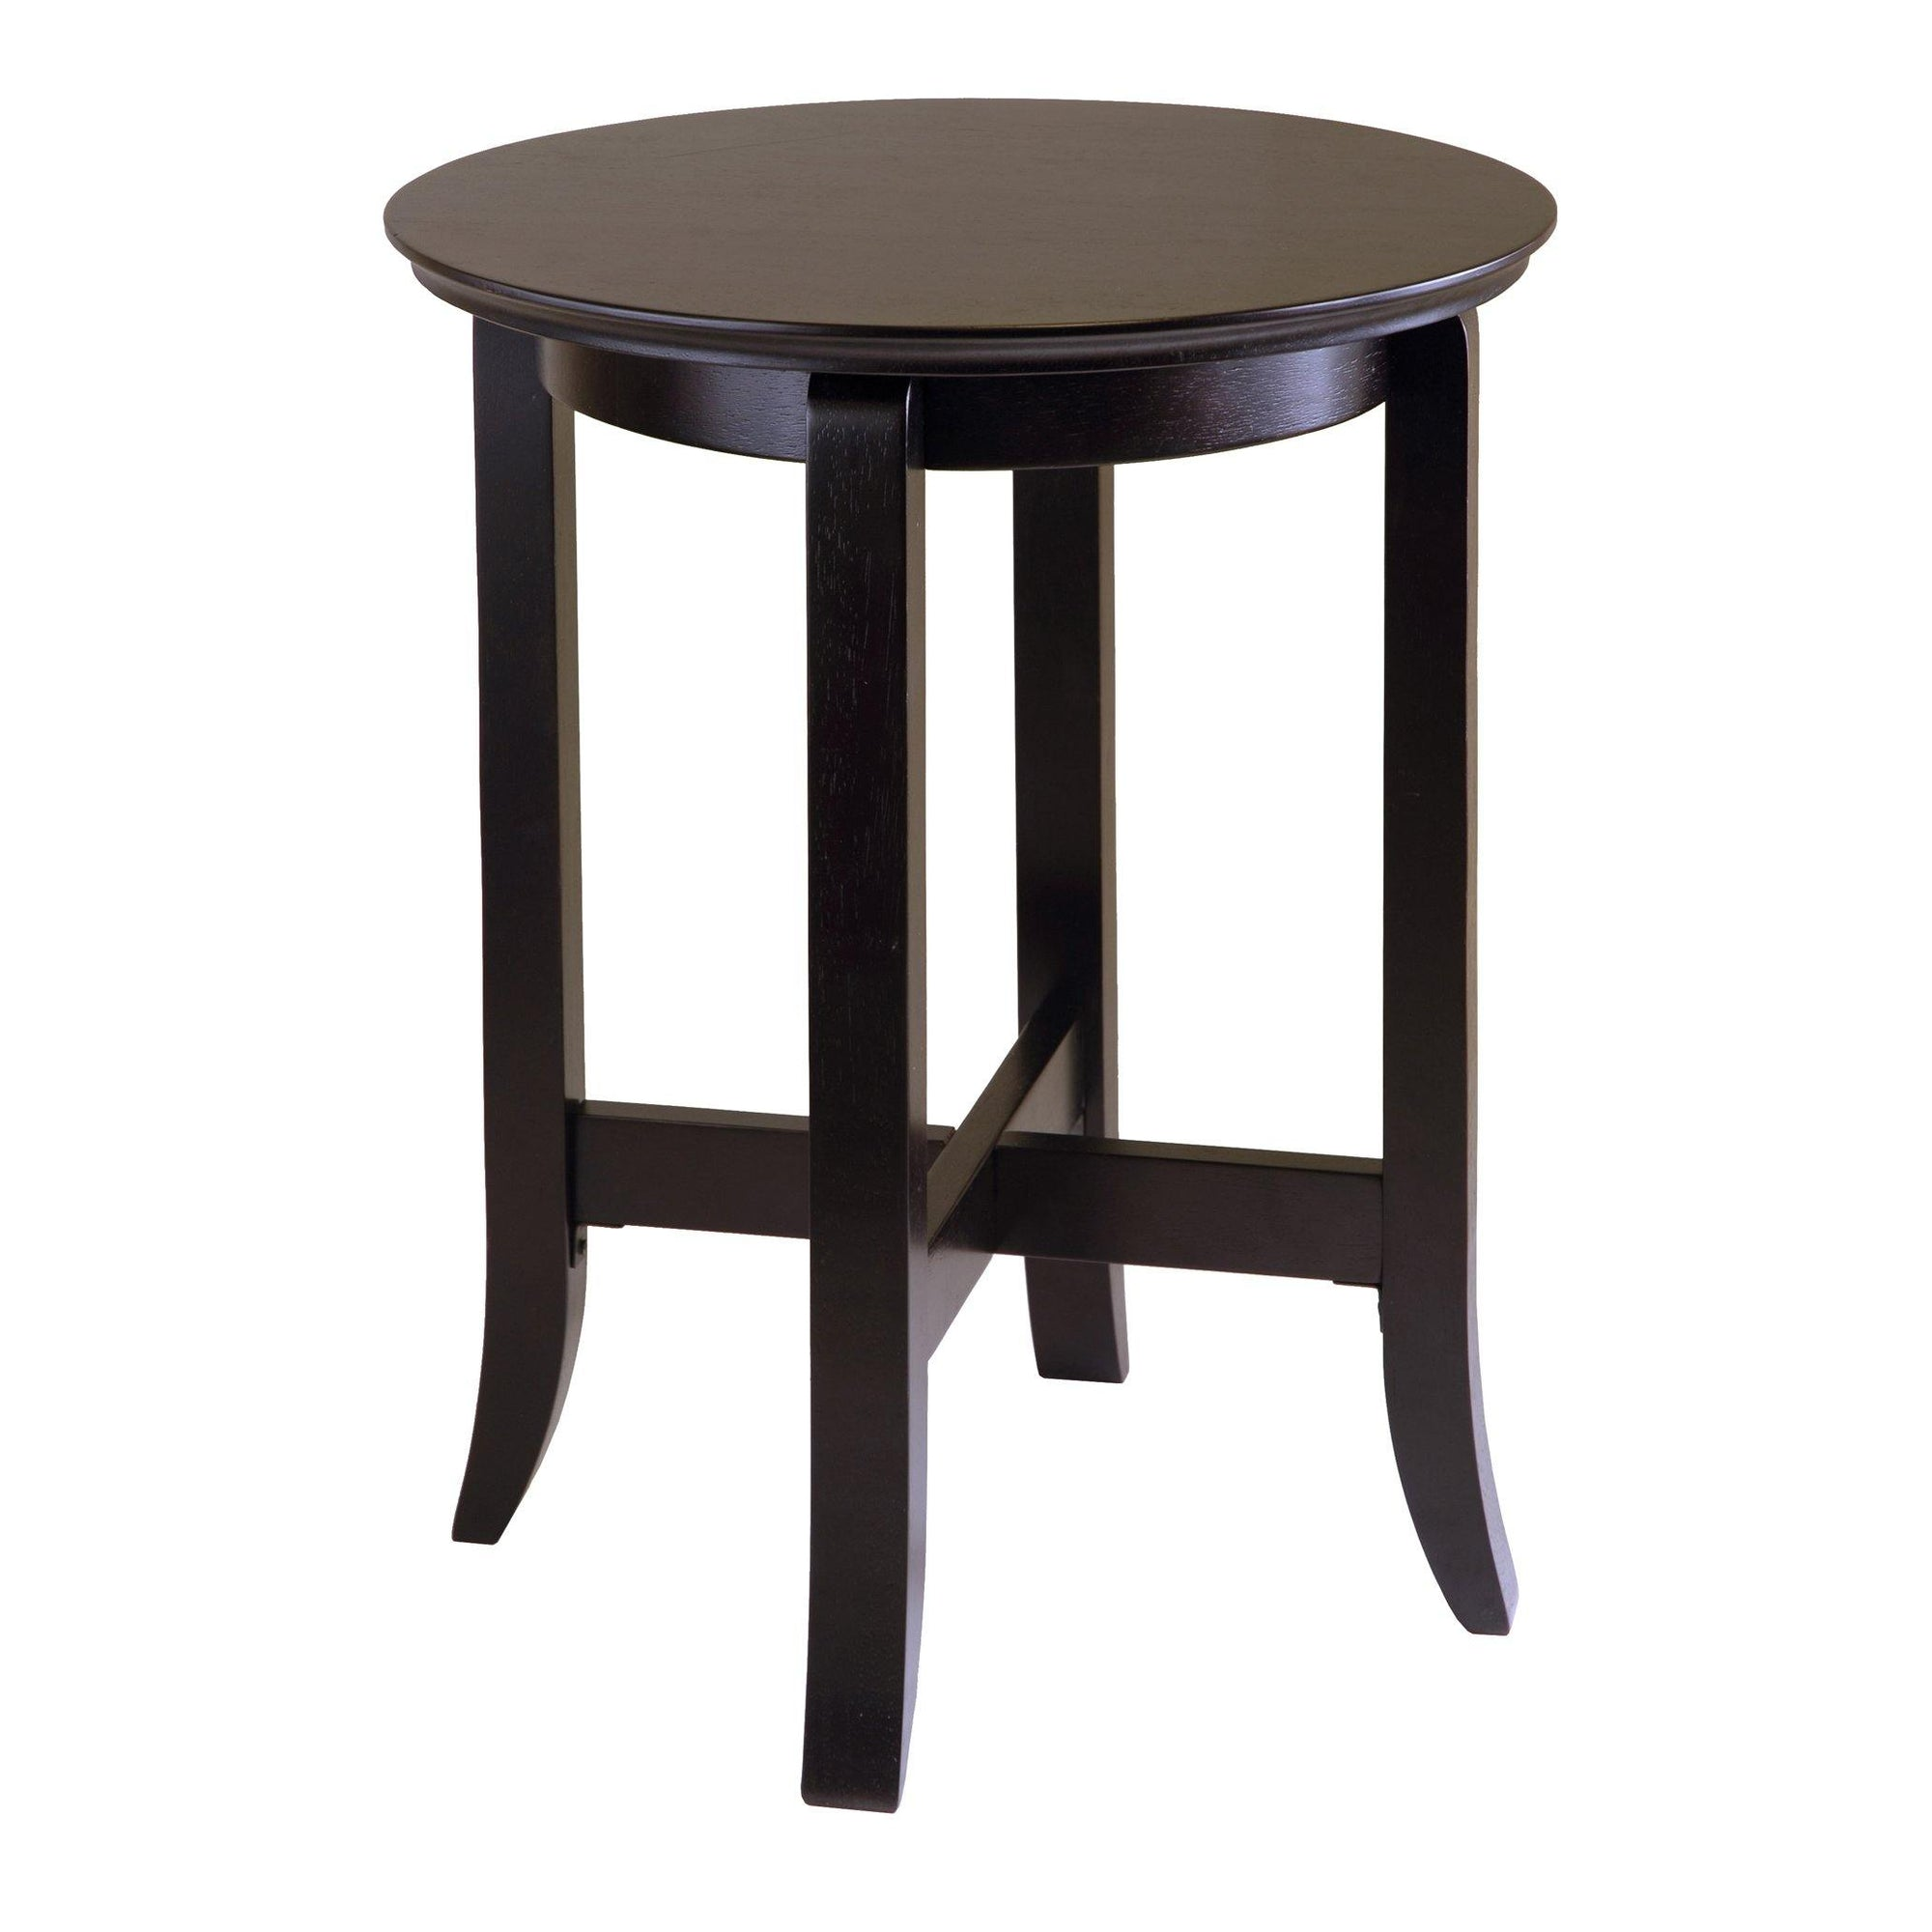 Toby Round Accent End Table, Espresso - My USA Furniture